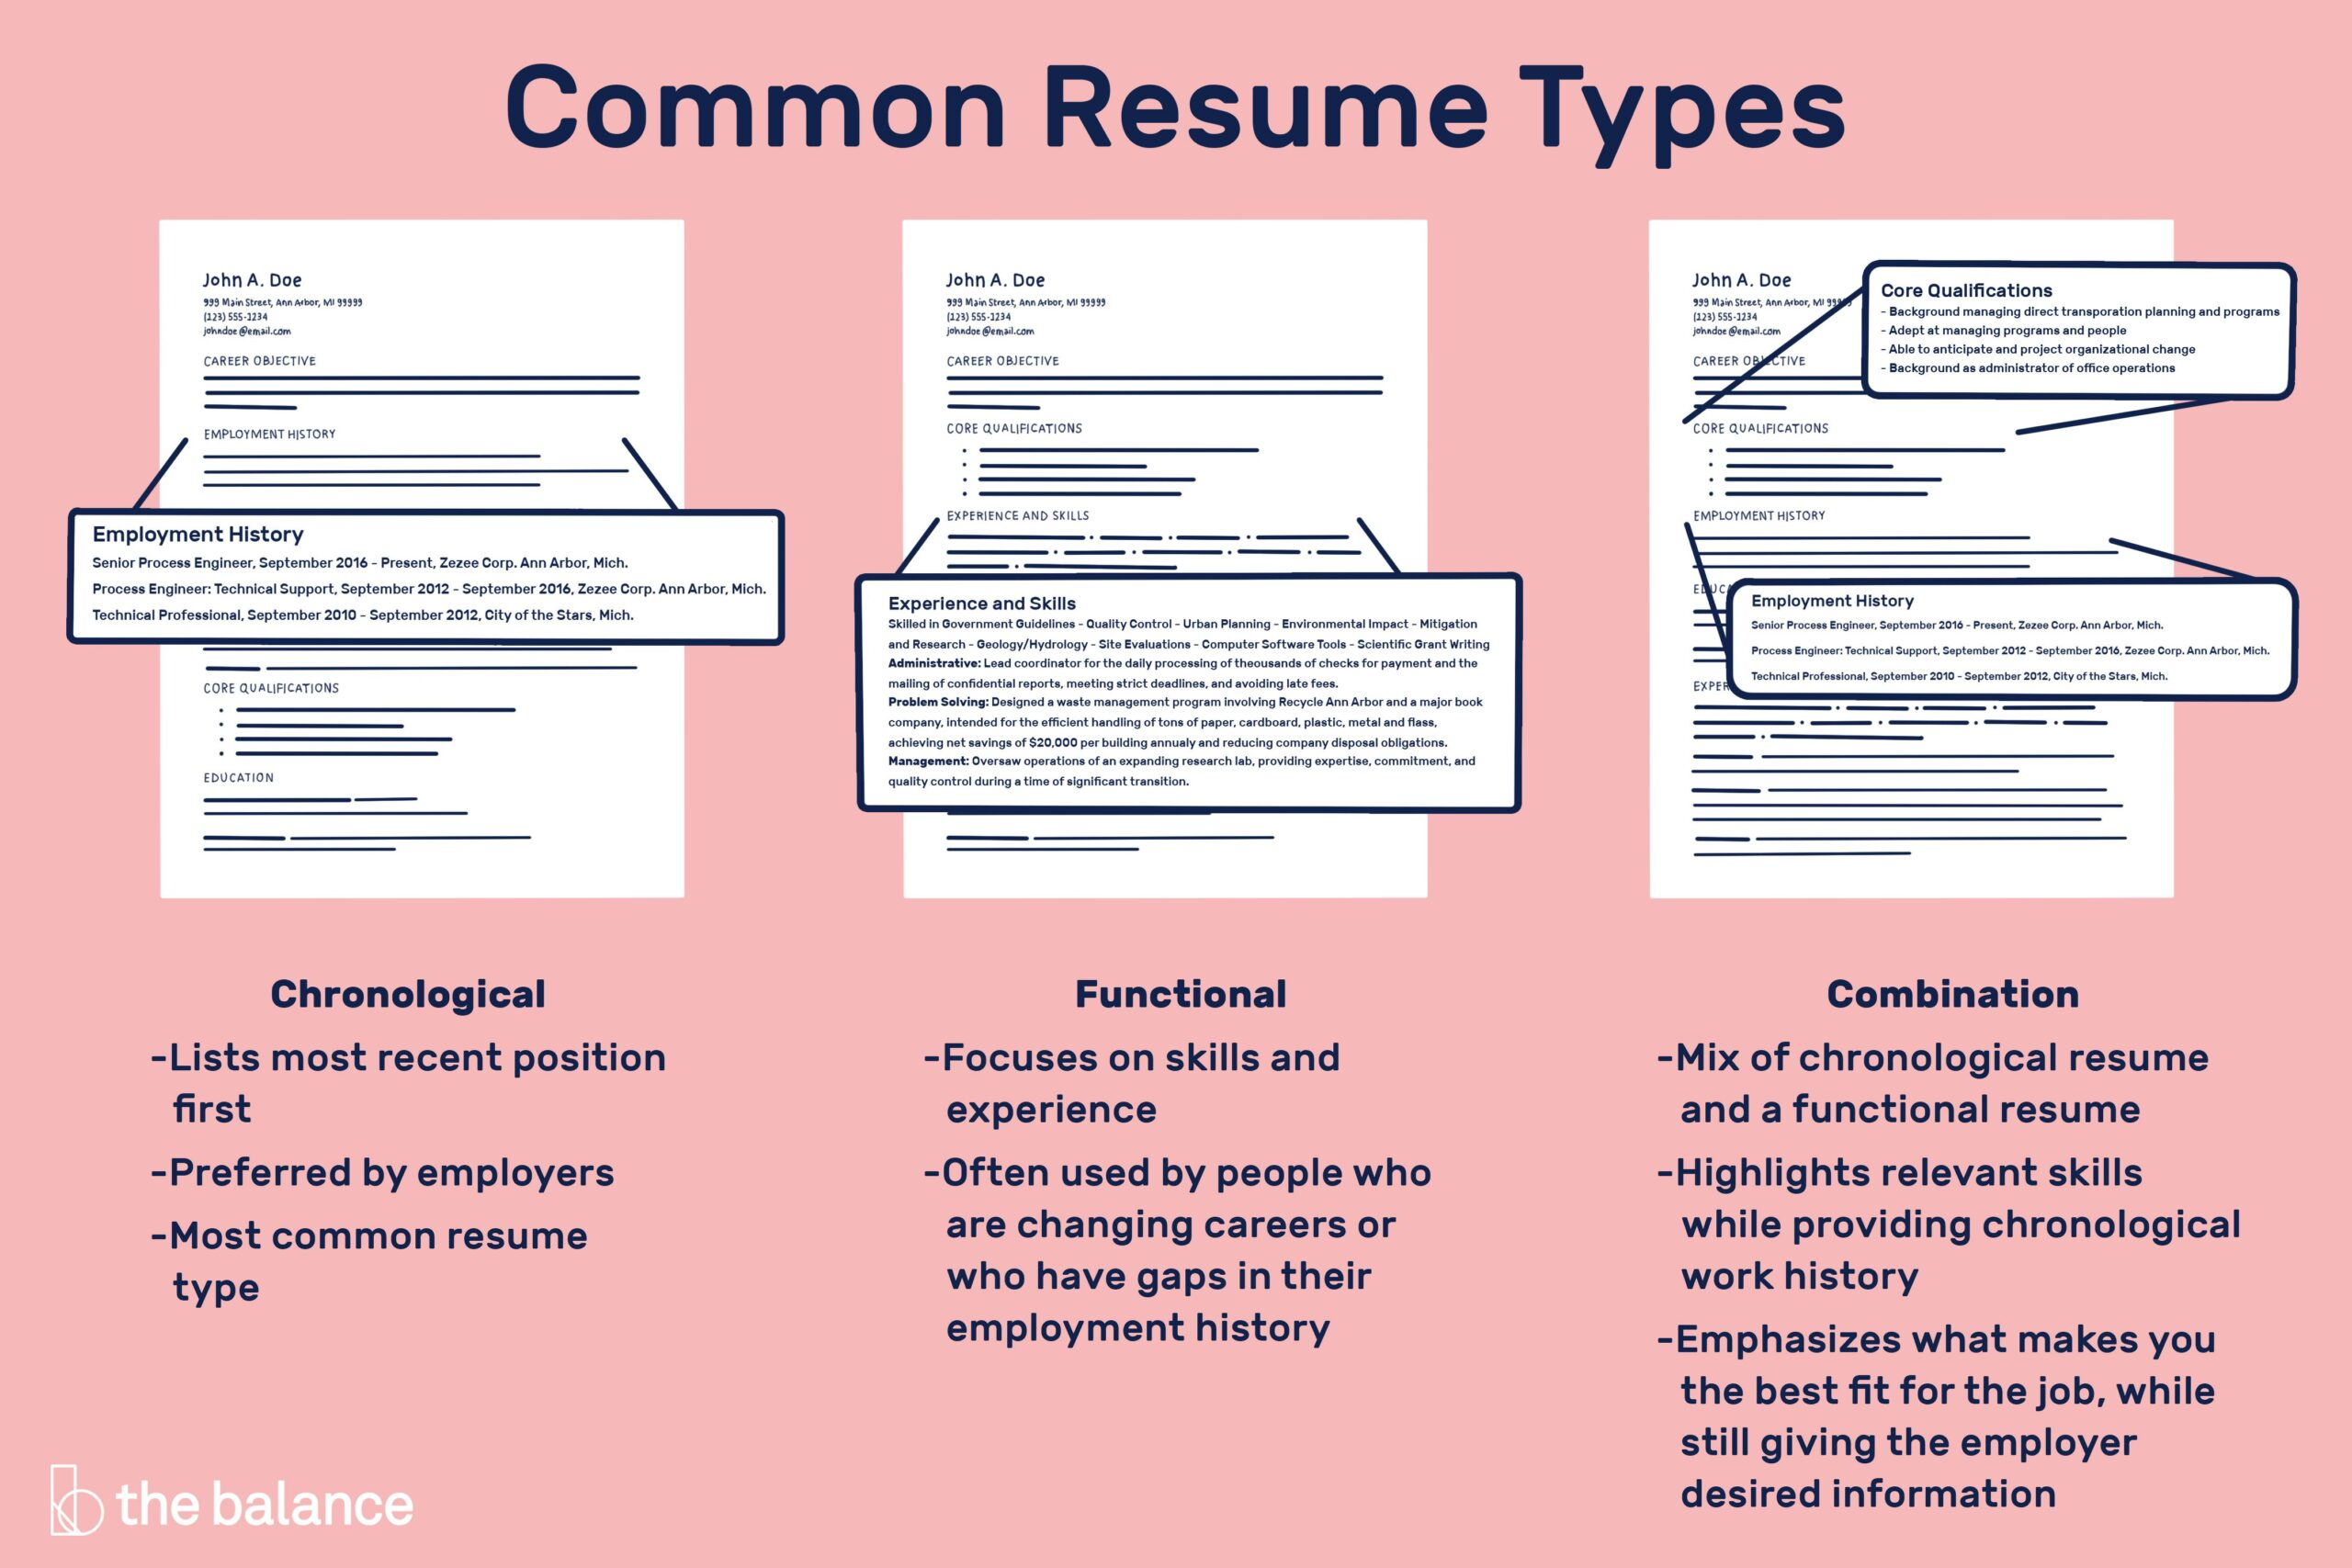 different resume types elements of style chronological functional combination 2063235v4 Resume Elements Of Resume Style